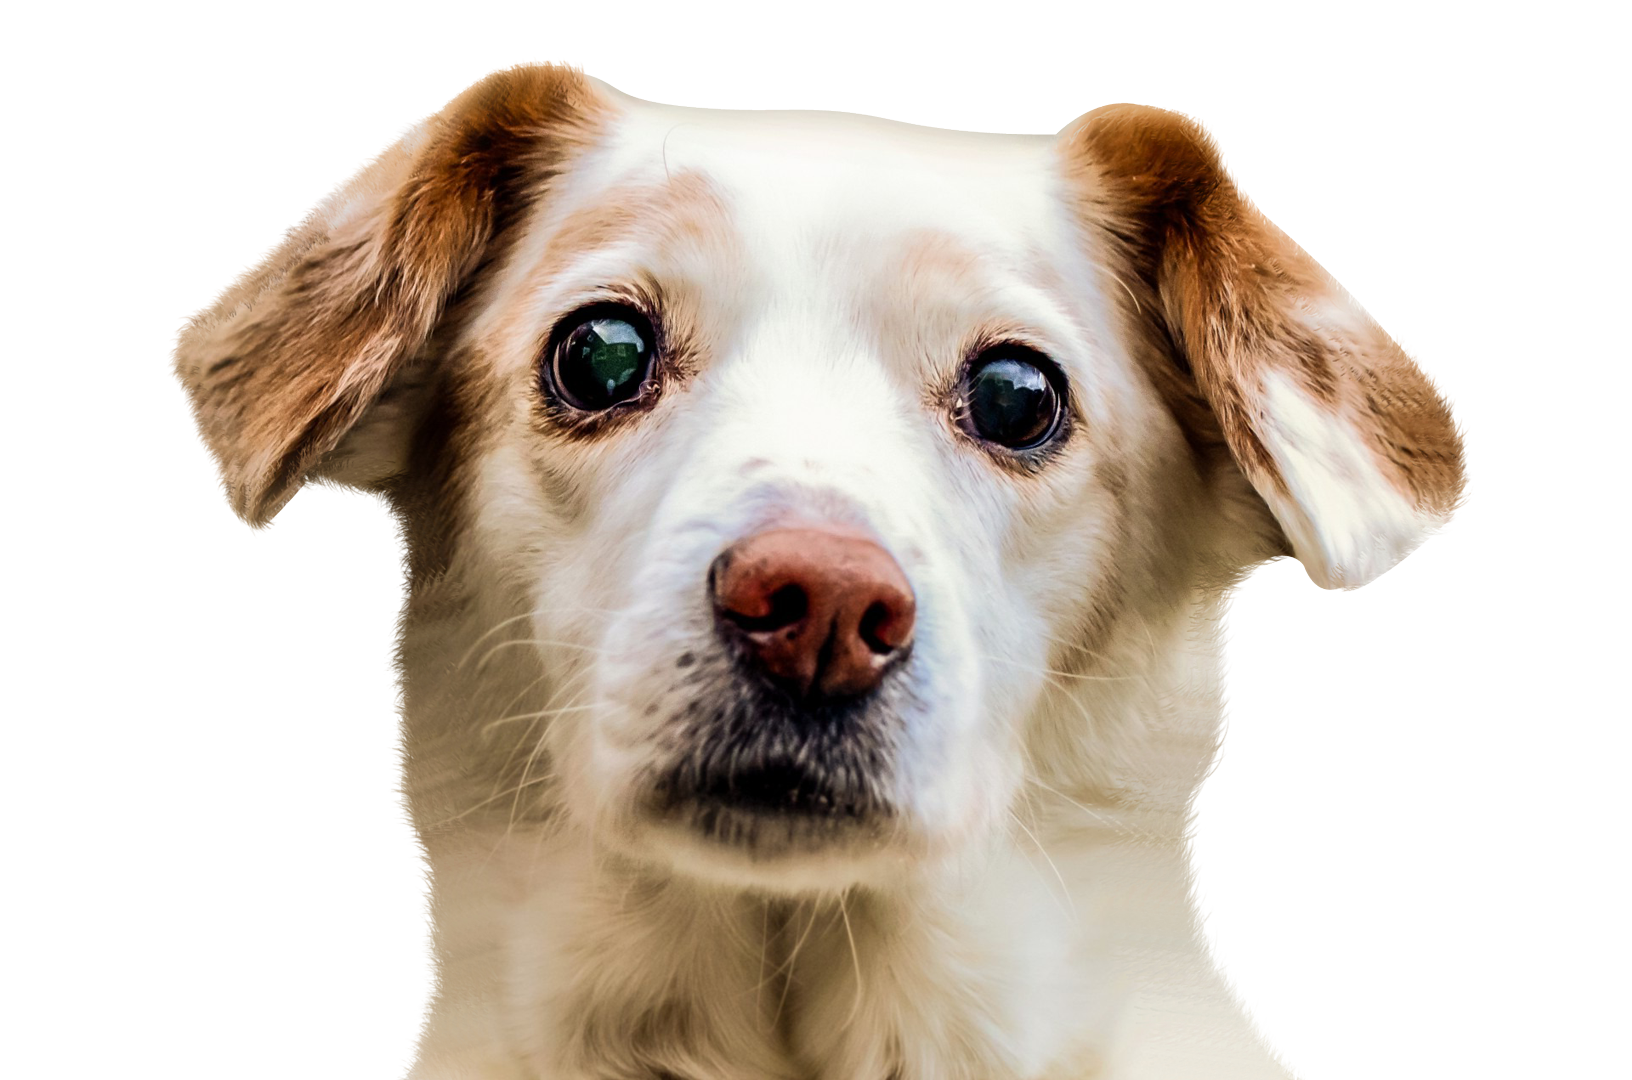 Dog Face Png Image Snapchat Dog Face Dog Face Puppy Dog Pictures